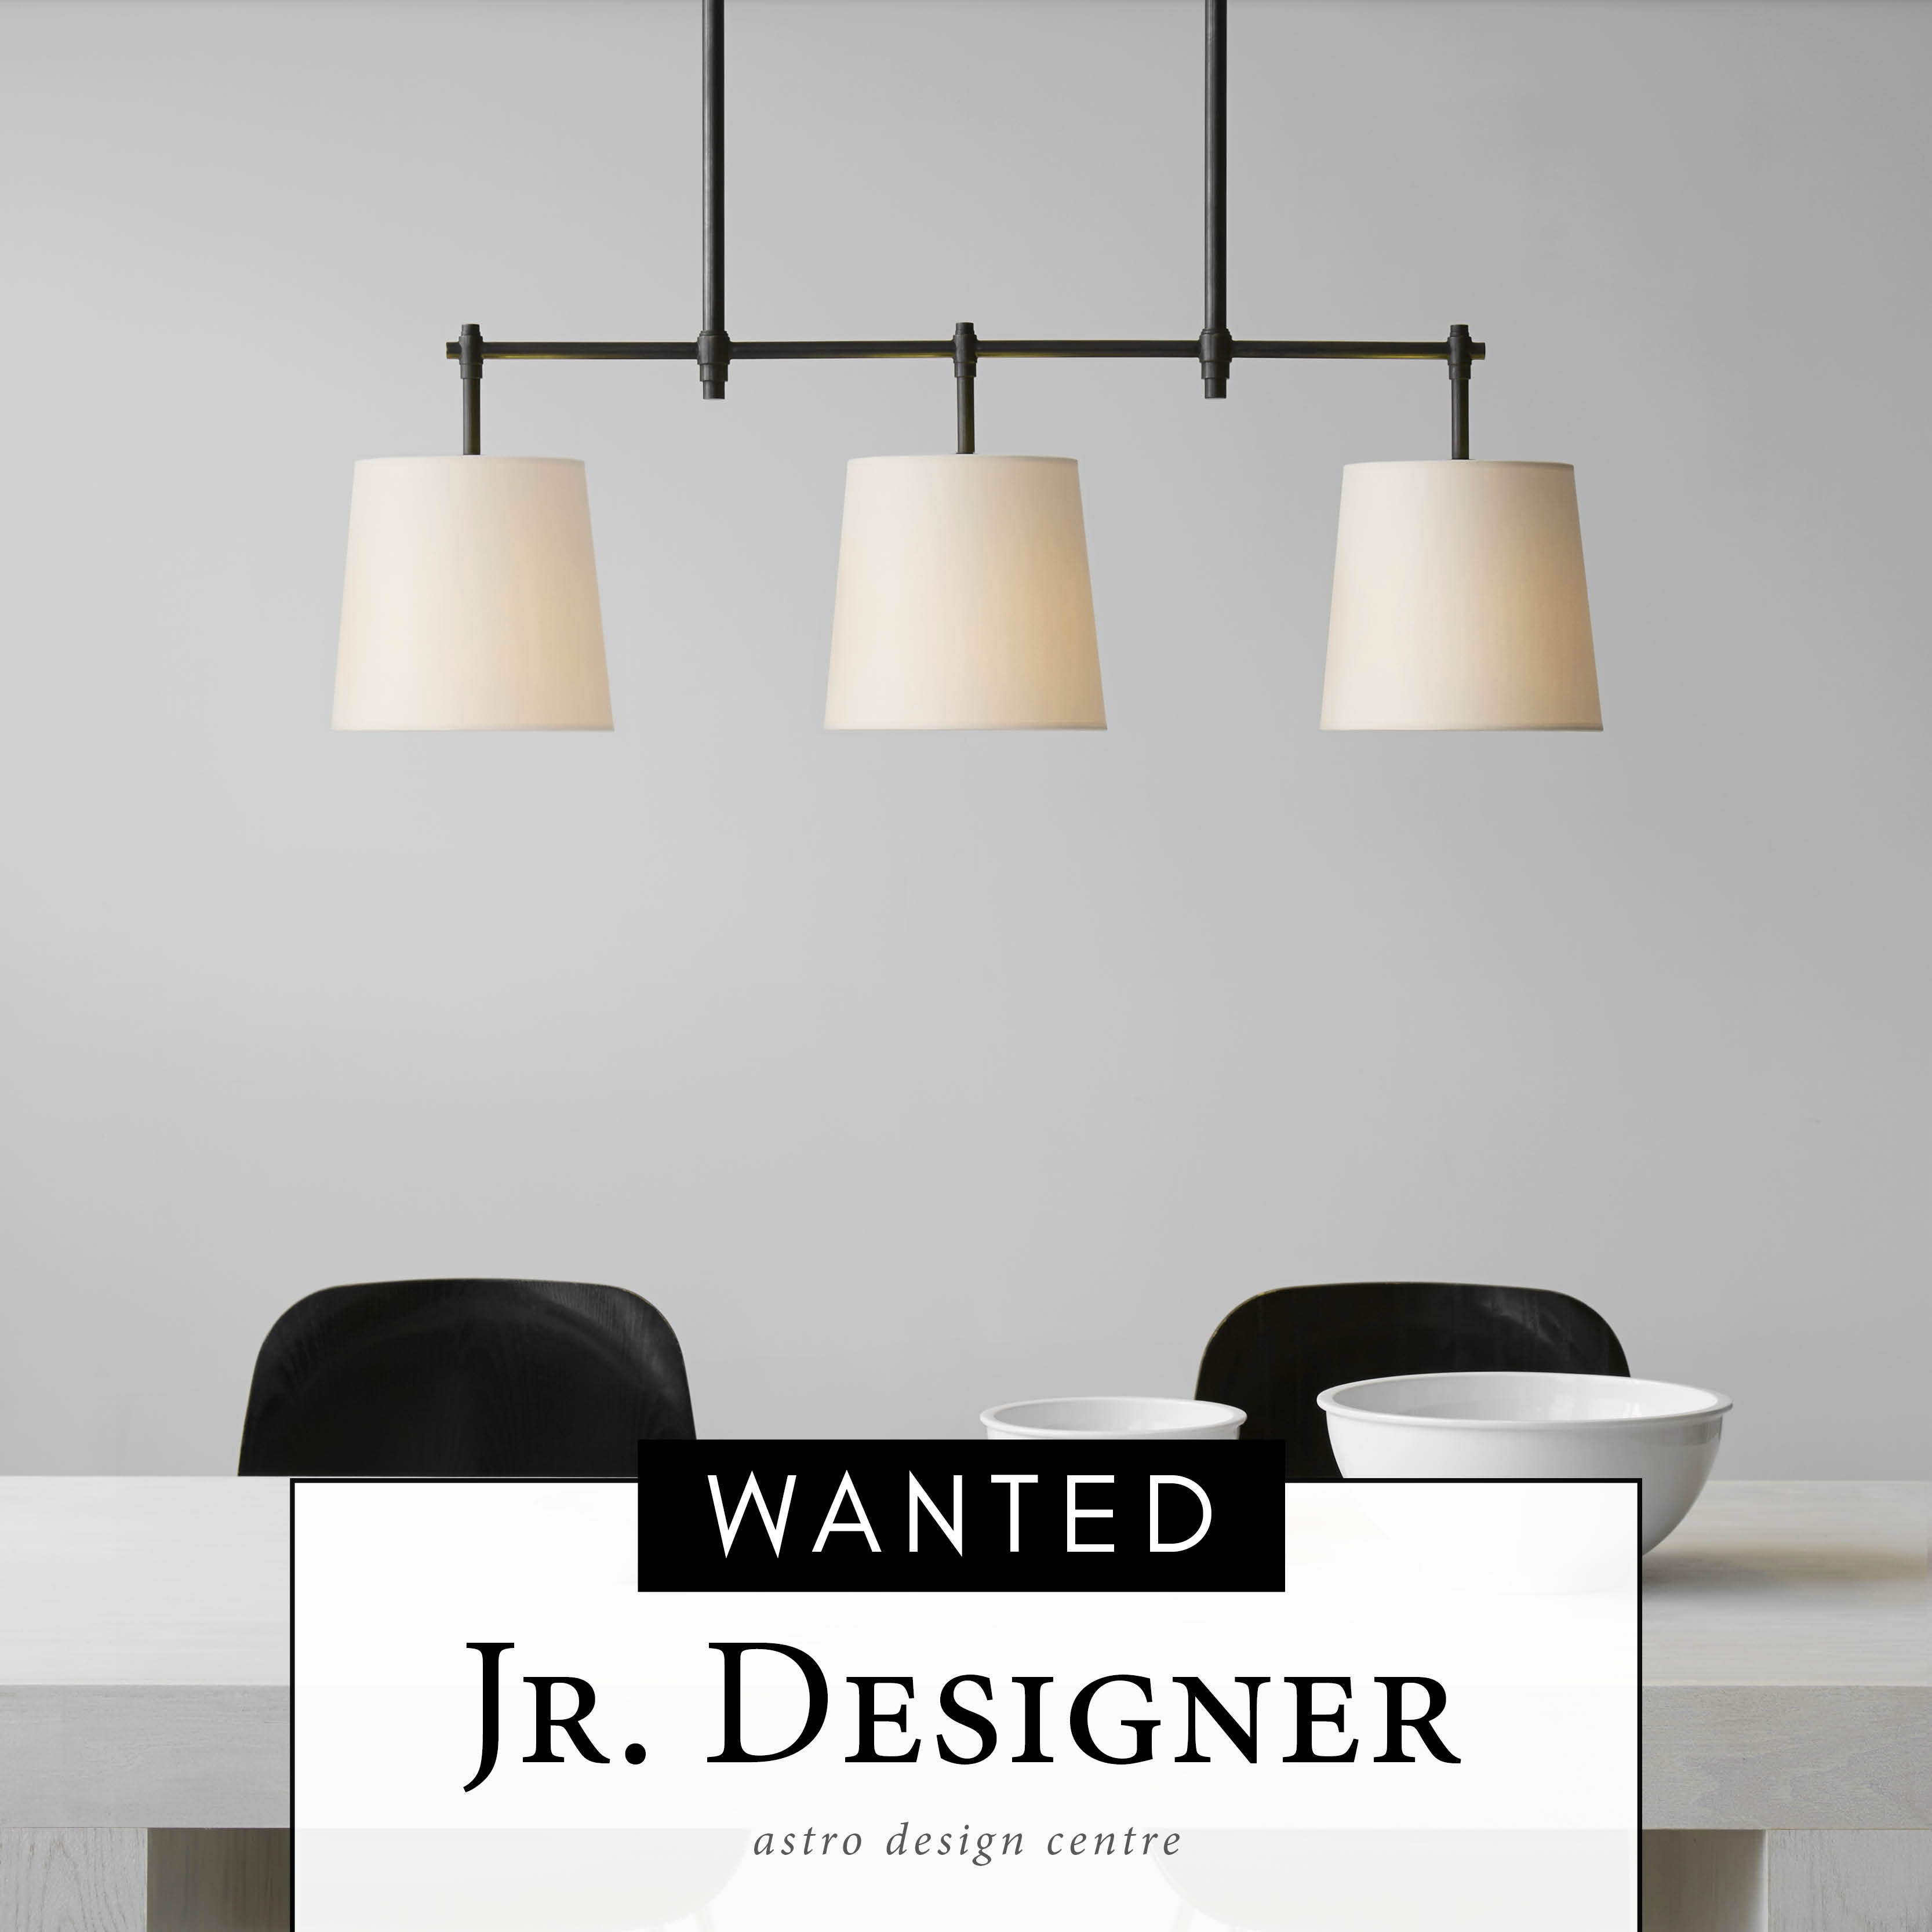 Jr. Designer Career Astro Design